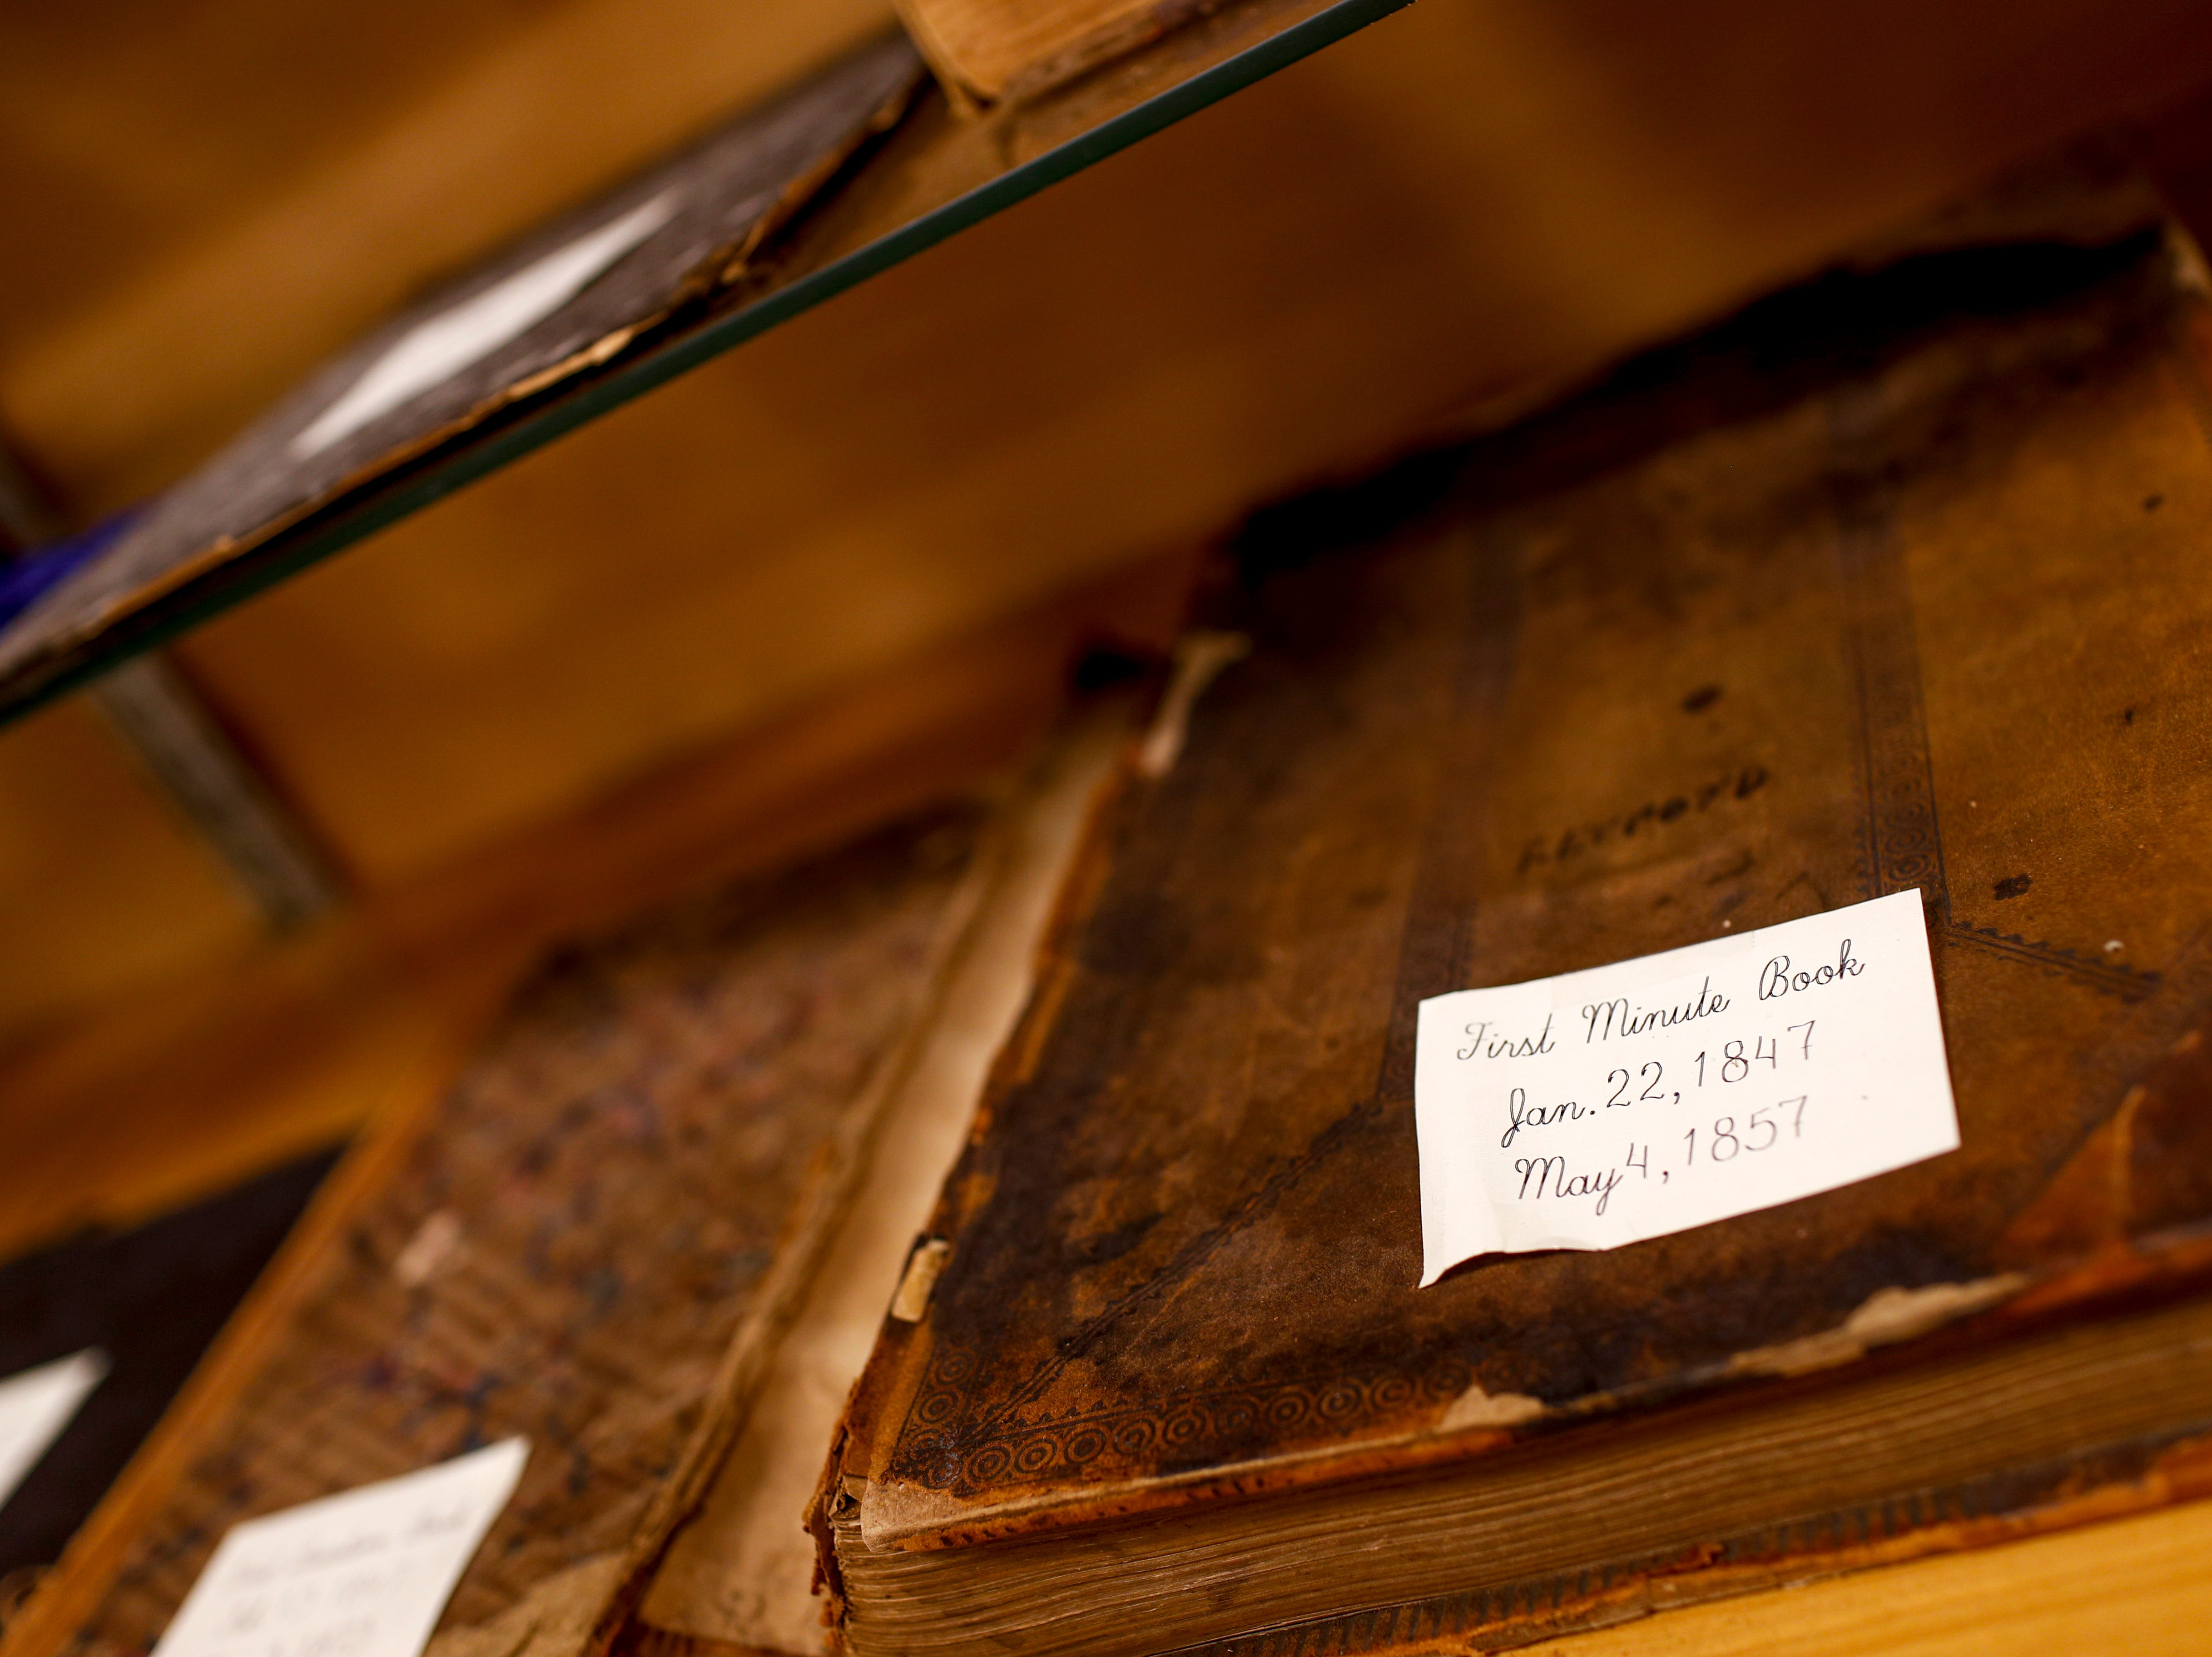 The very first book used to record minutes is on display in a glass cabinet for viewing at Odd Fellow Lodge in Clarksville, Tenn., on Tuesday, April 23, 2019.